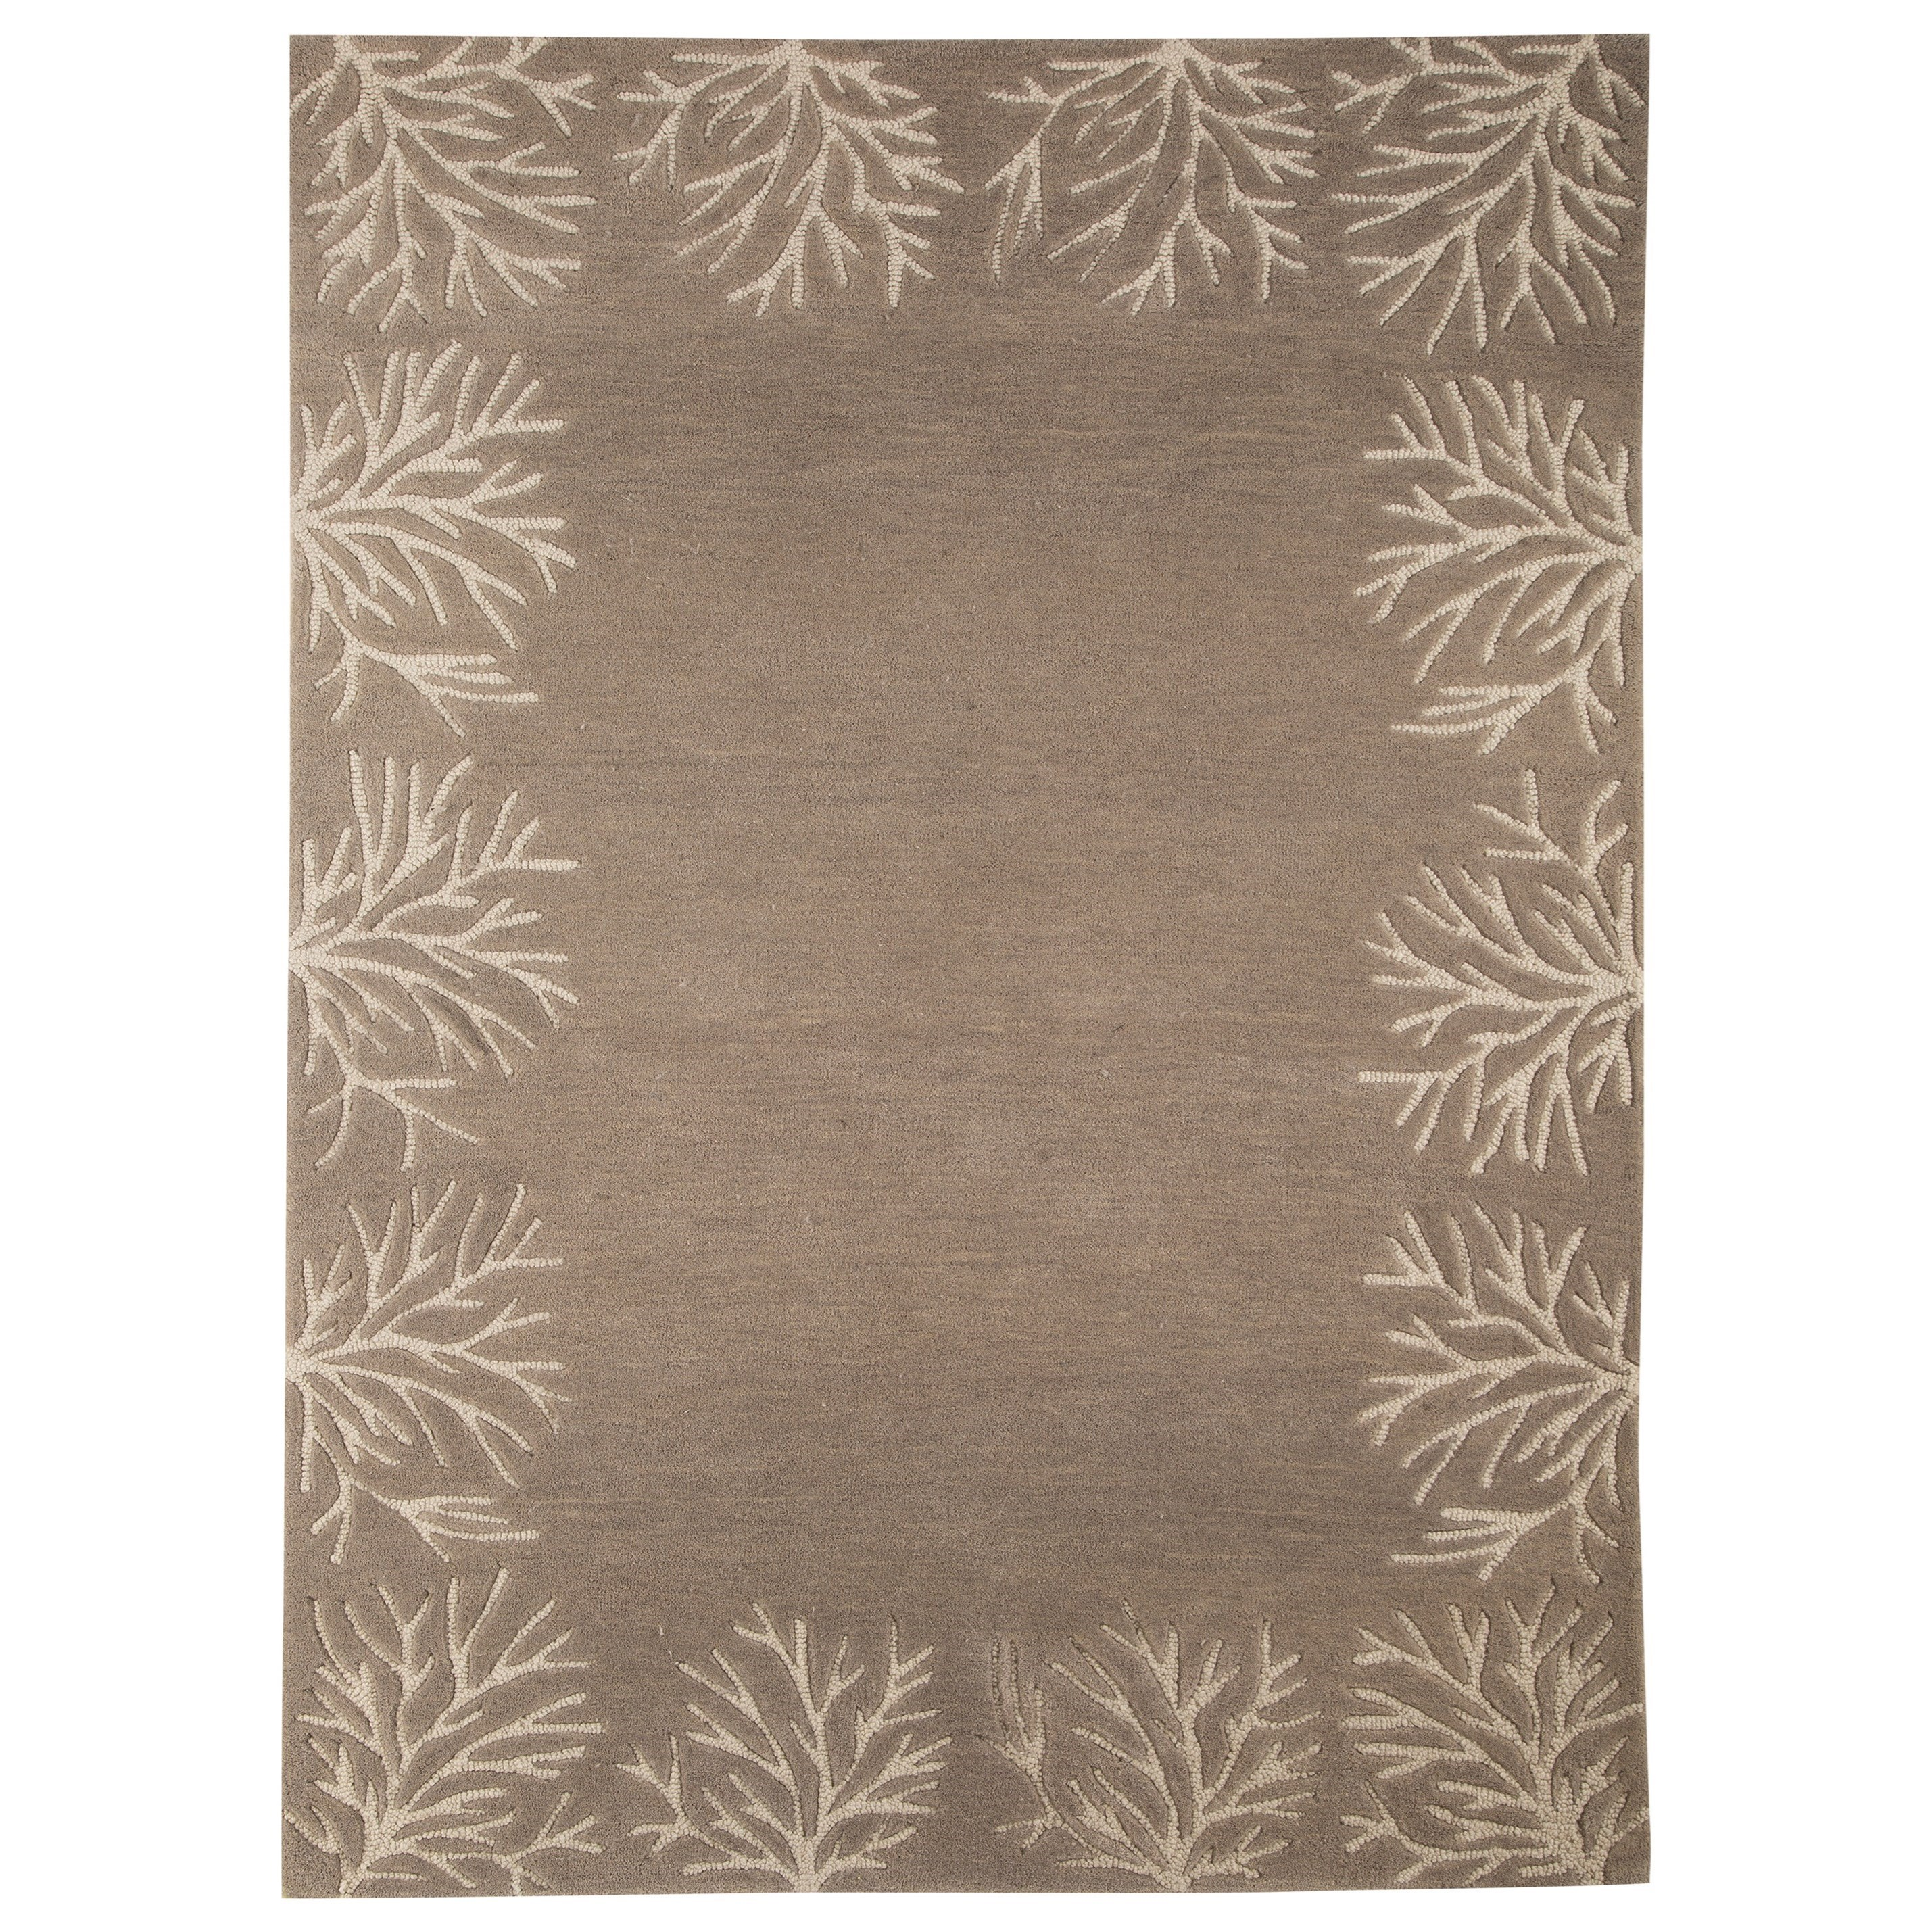 Signature Design by Ashley Transitional Area Rugs Kierin Brown Medium Rug - Item Number: R400322